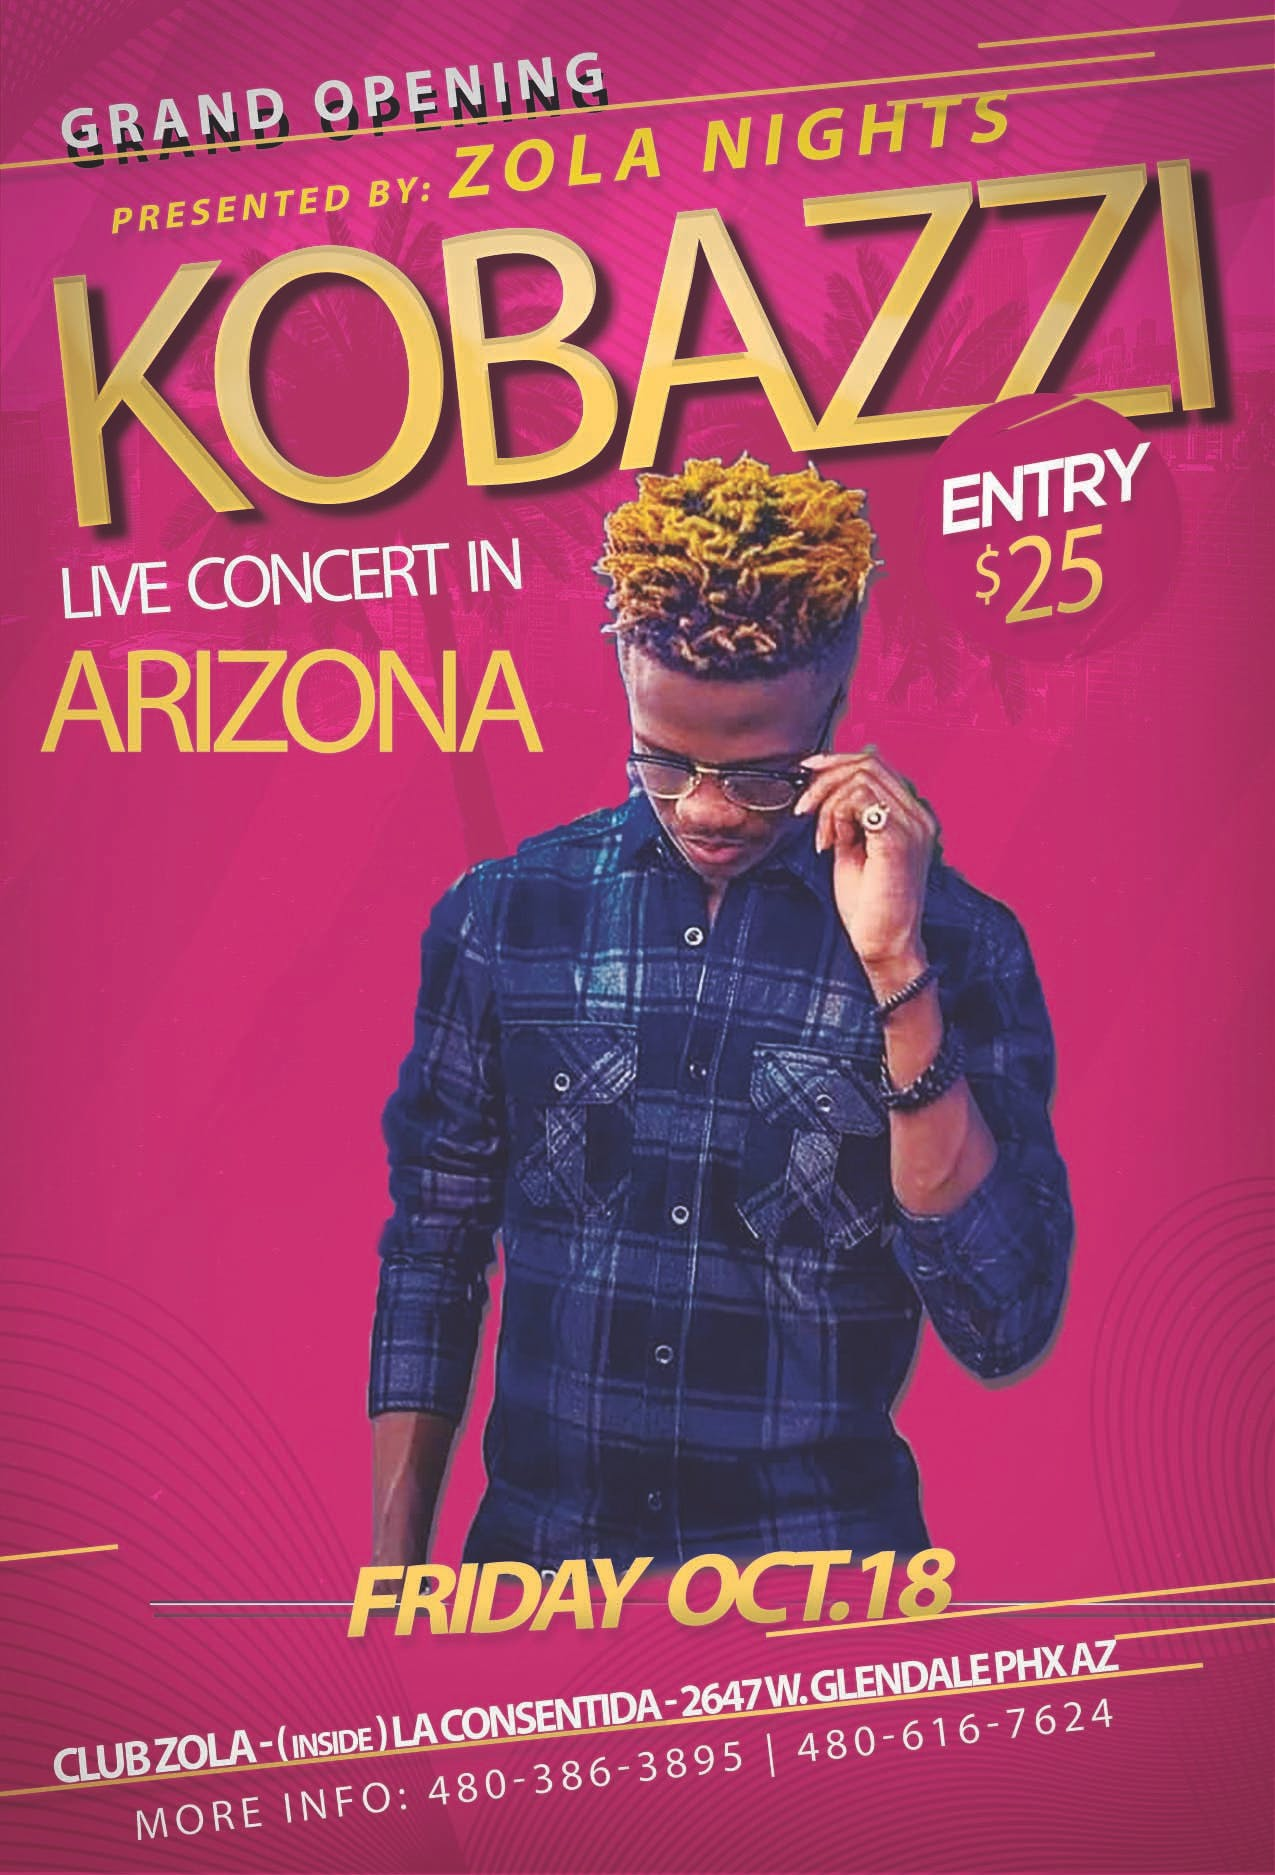 ZOLA NIGHT GRAND OPENING FT. KOBAZZI LIVE IN CONCERT